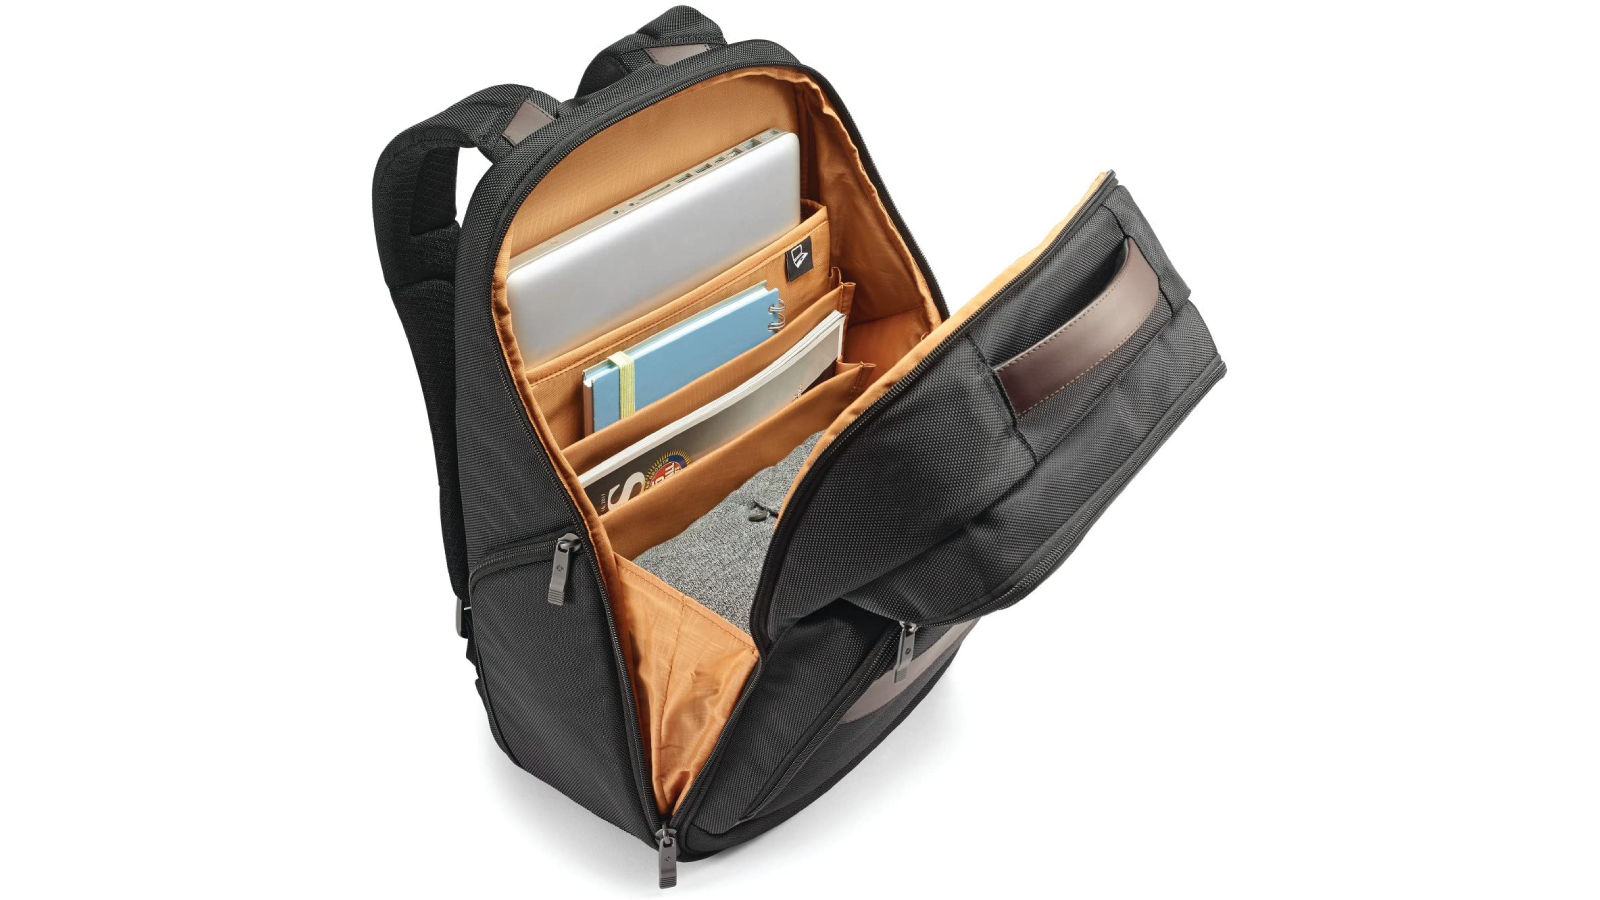 Backpack opened to show interior organization design